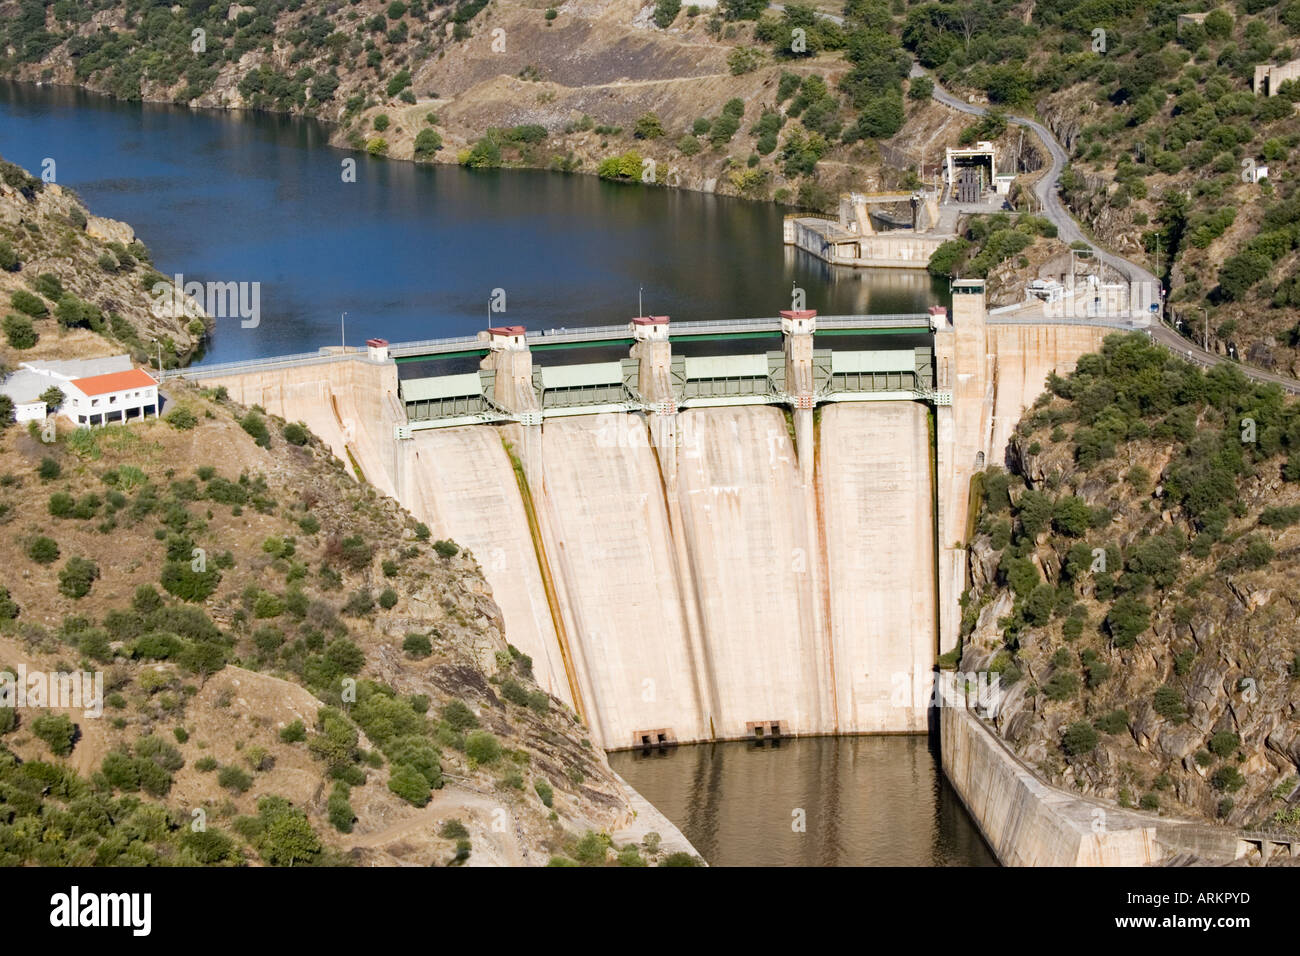 Shared hydroelectric dam at Barca de Alva on Rio Doura on Spanish Portuguese border taken from Spain - Stock Image